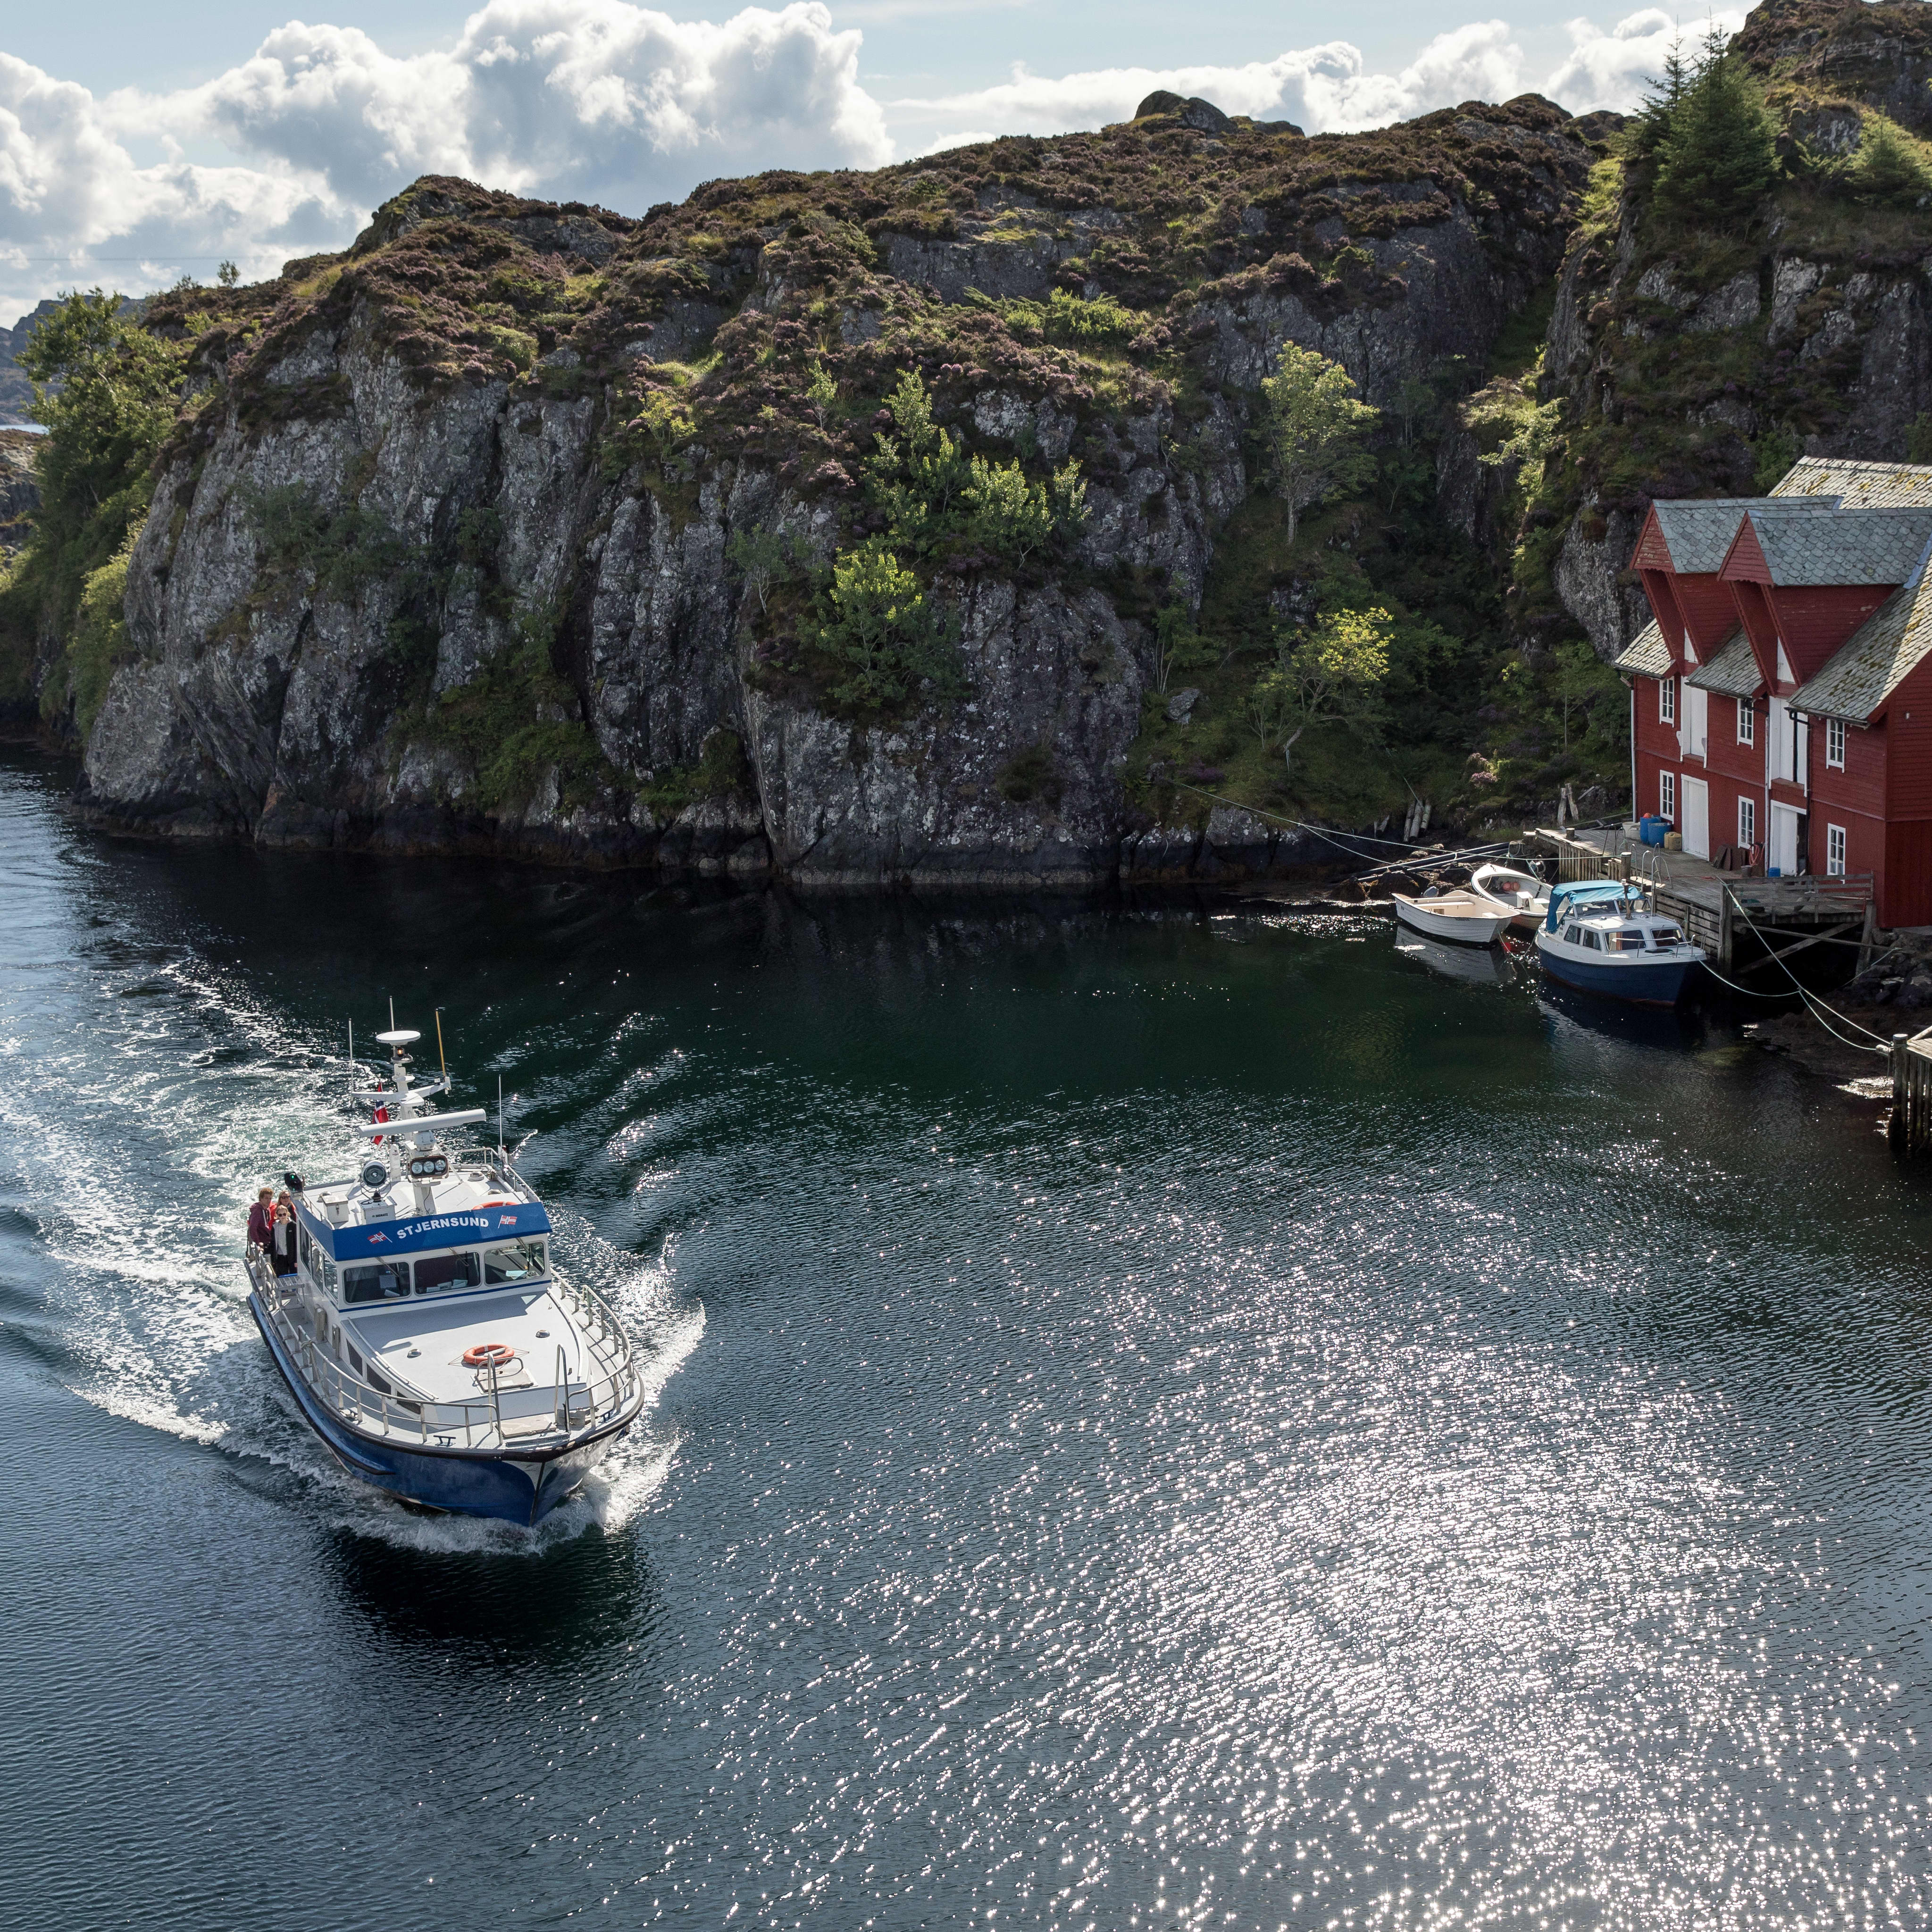 The local postal boat driving between small Western Norwegian communities dropping of mail and transporting tourists.